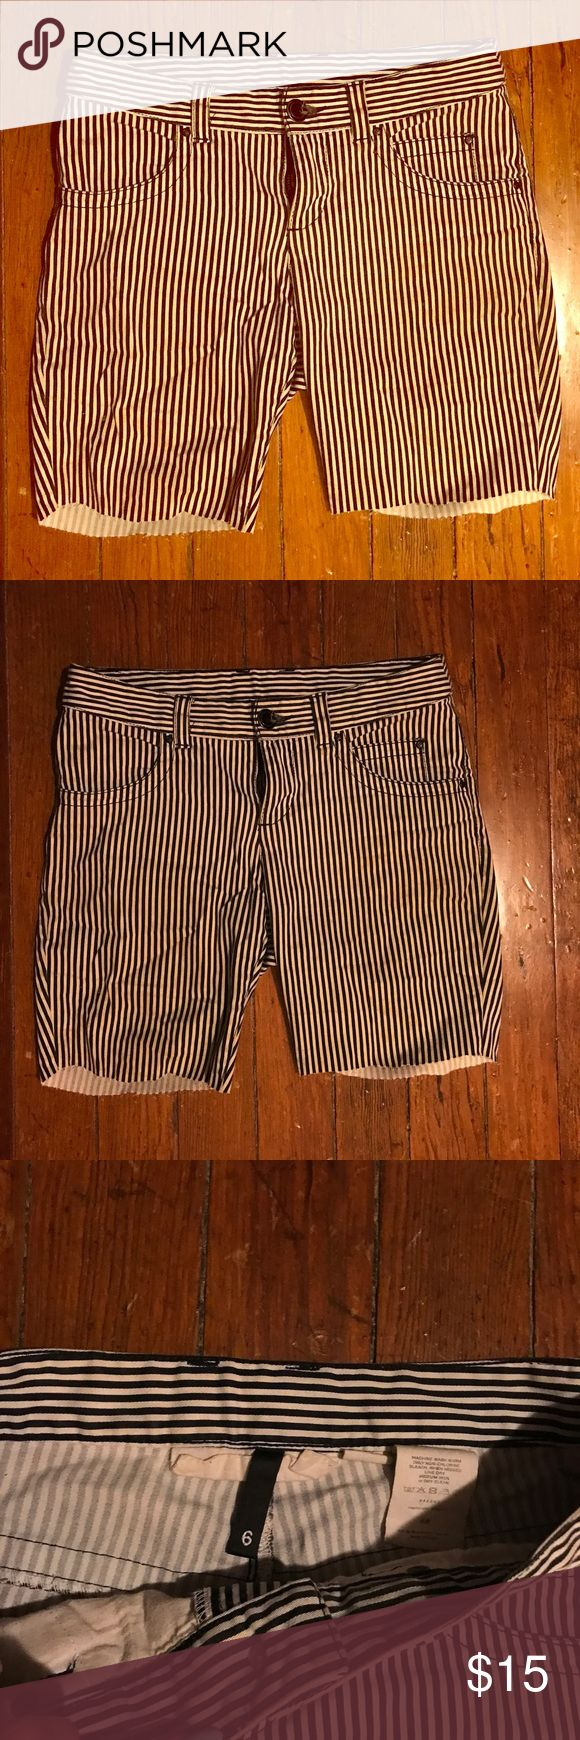 """Grunge Cut Off Beetlejuice Pinstripe Shorts These are shorts I made out of my favorite pair of pants. They are black and cream pinstripe with a frayed edge. Due to the fact that these are an older pair of pants they are not a crisp white, but they look amazing when on and have the perfect """"worn"""" look and feel. Offers are welcome. H&M Shorts Jean Shorts"""